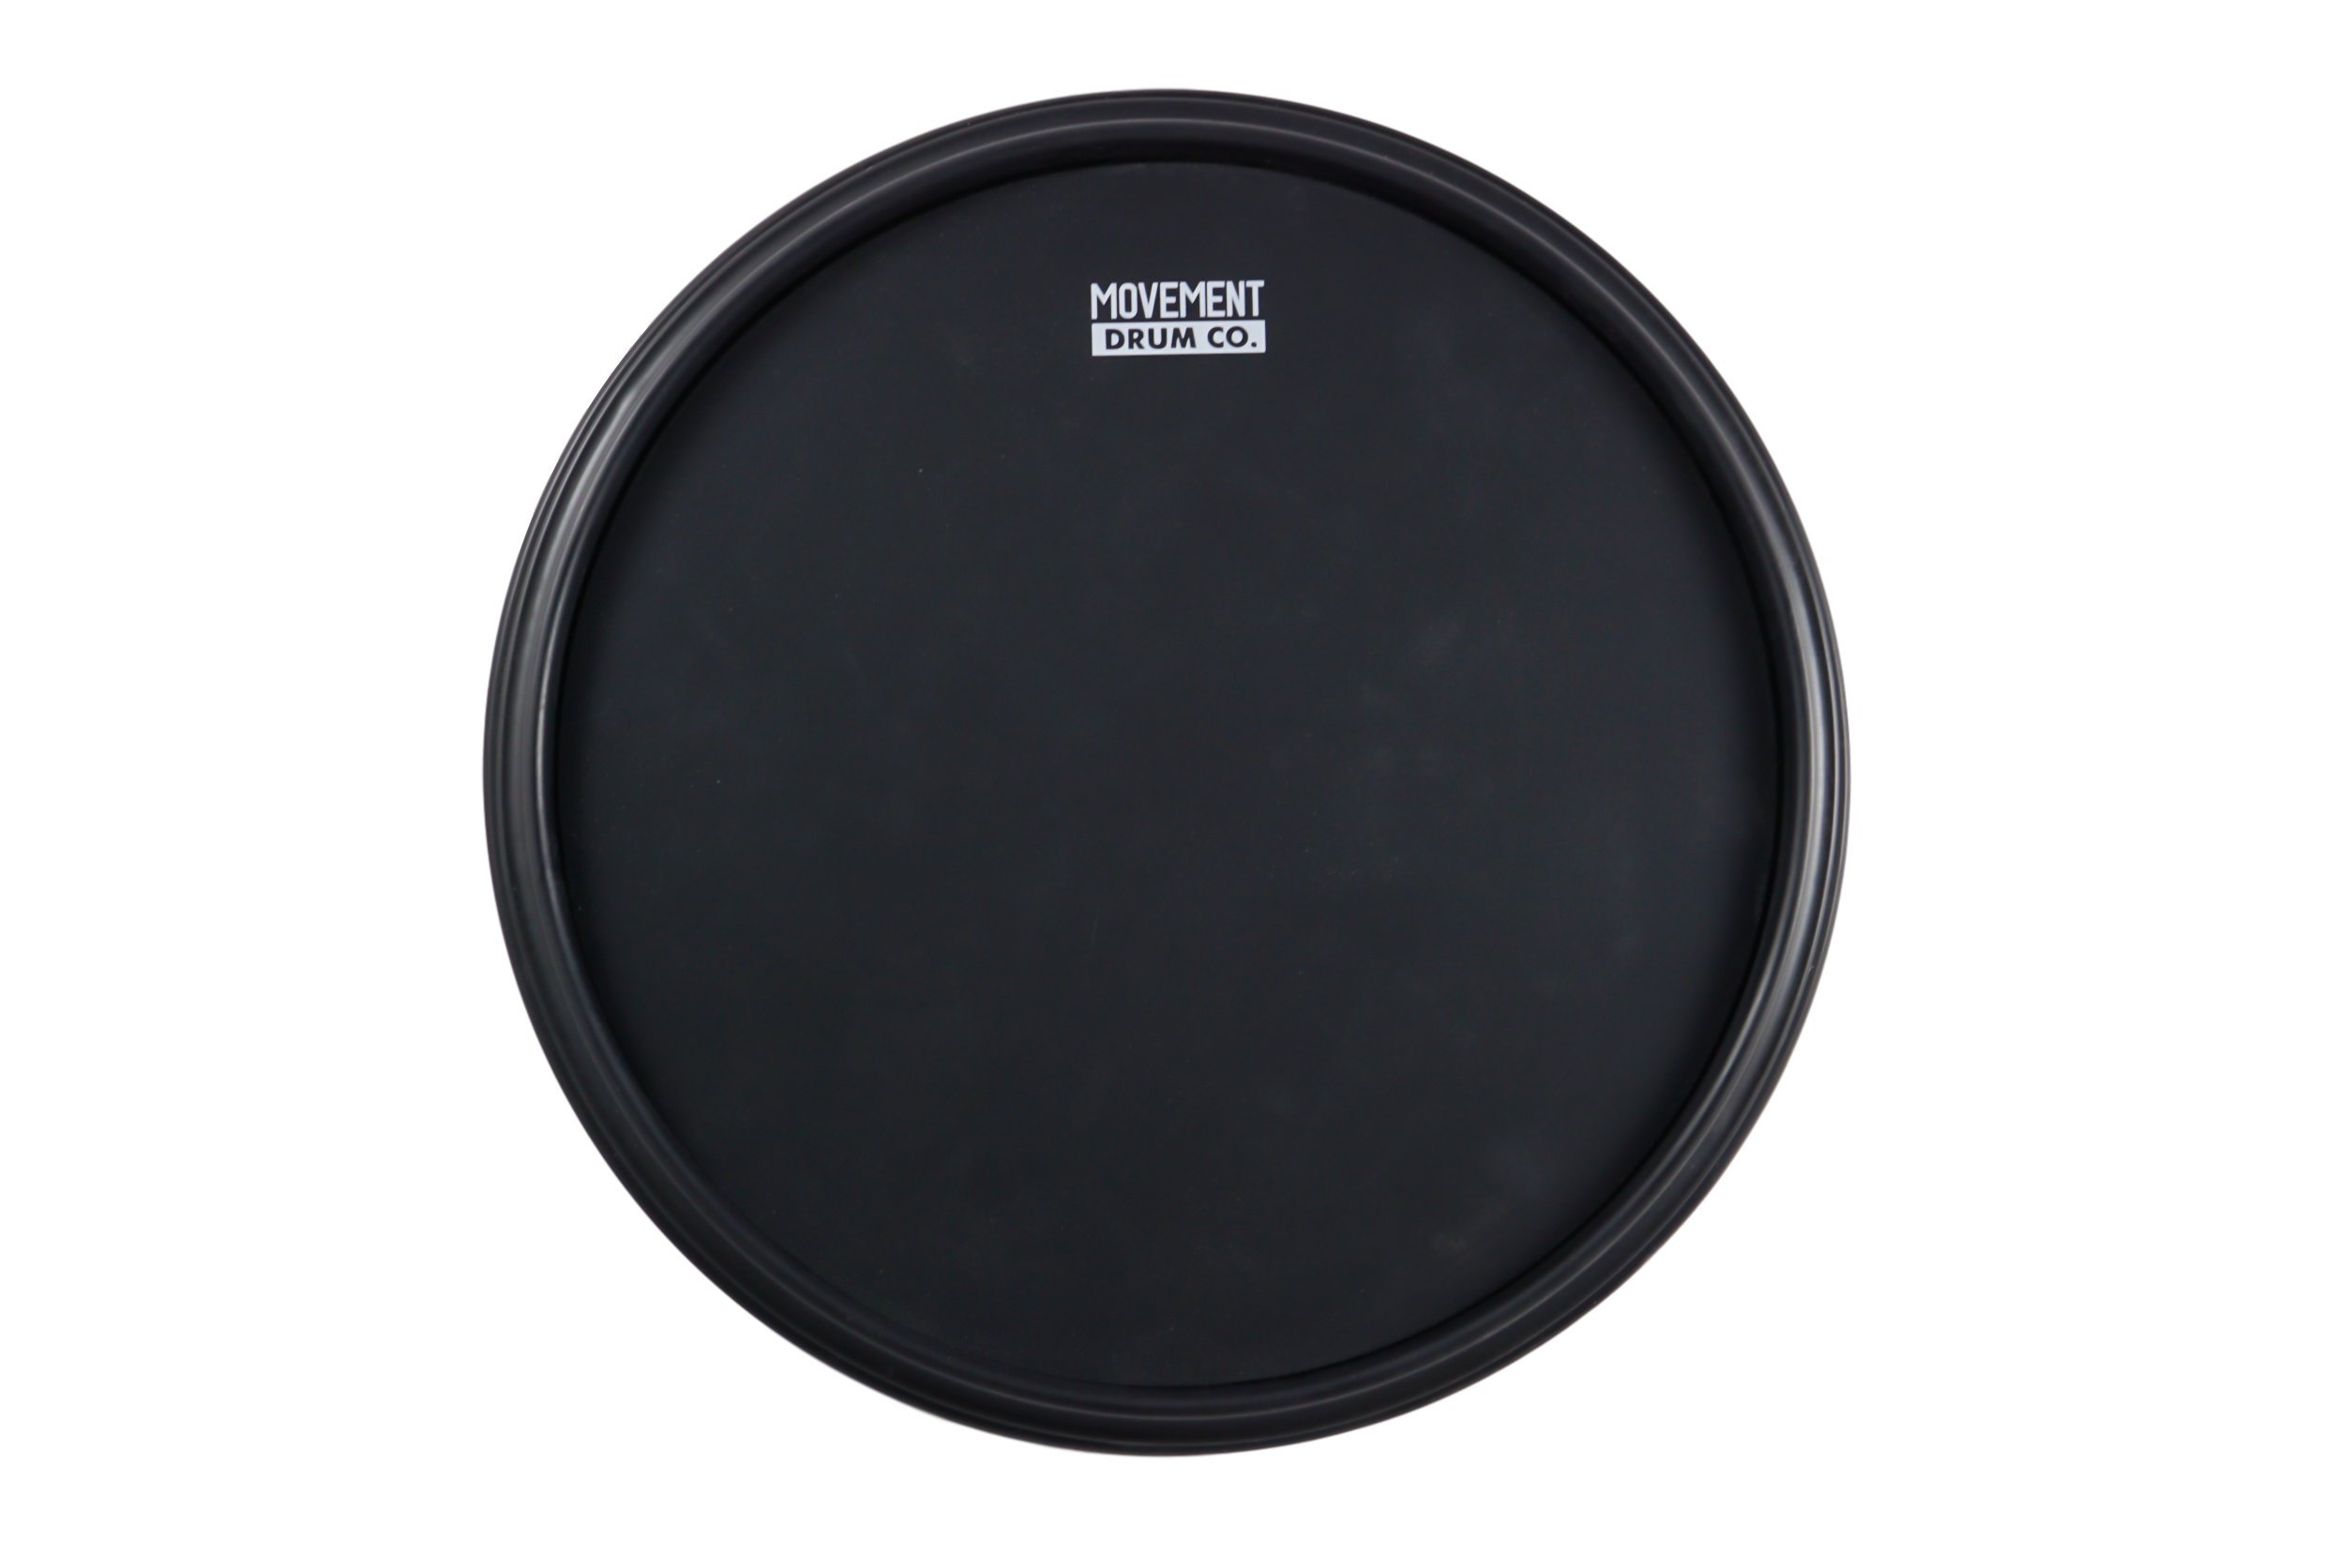 The 12-inch Double Sided Practice Pad, All-in-1 - Four Different Hitting Surfaces, The Most Complete Practice Pad In The Market